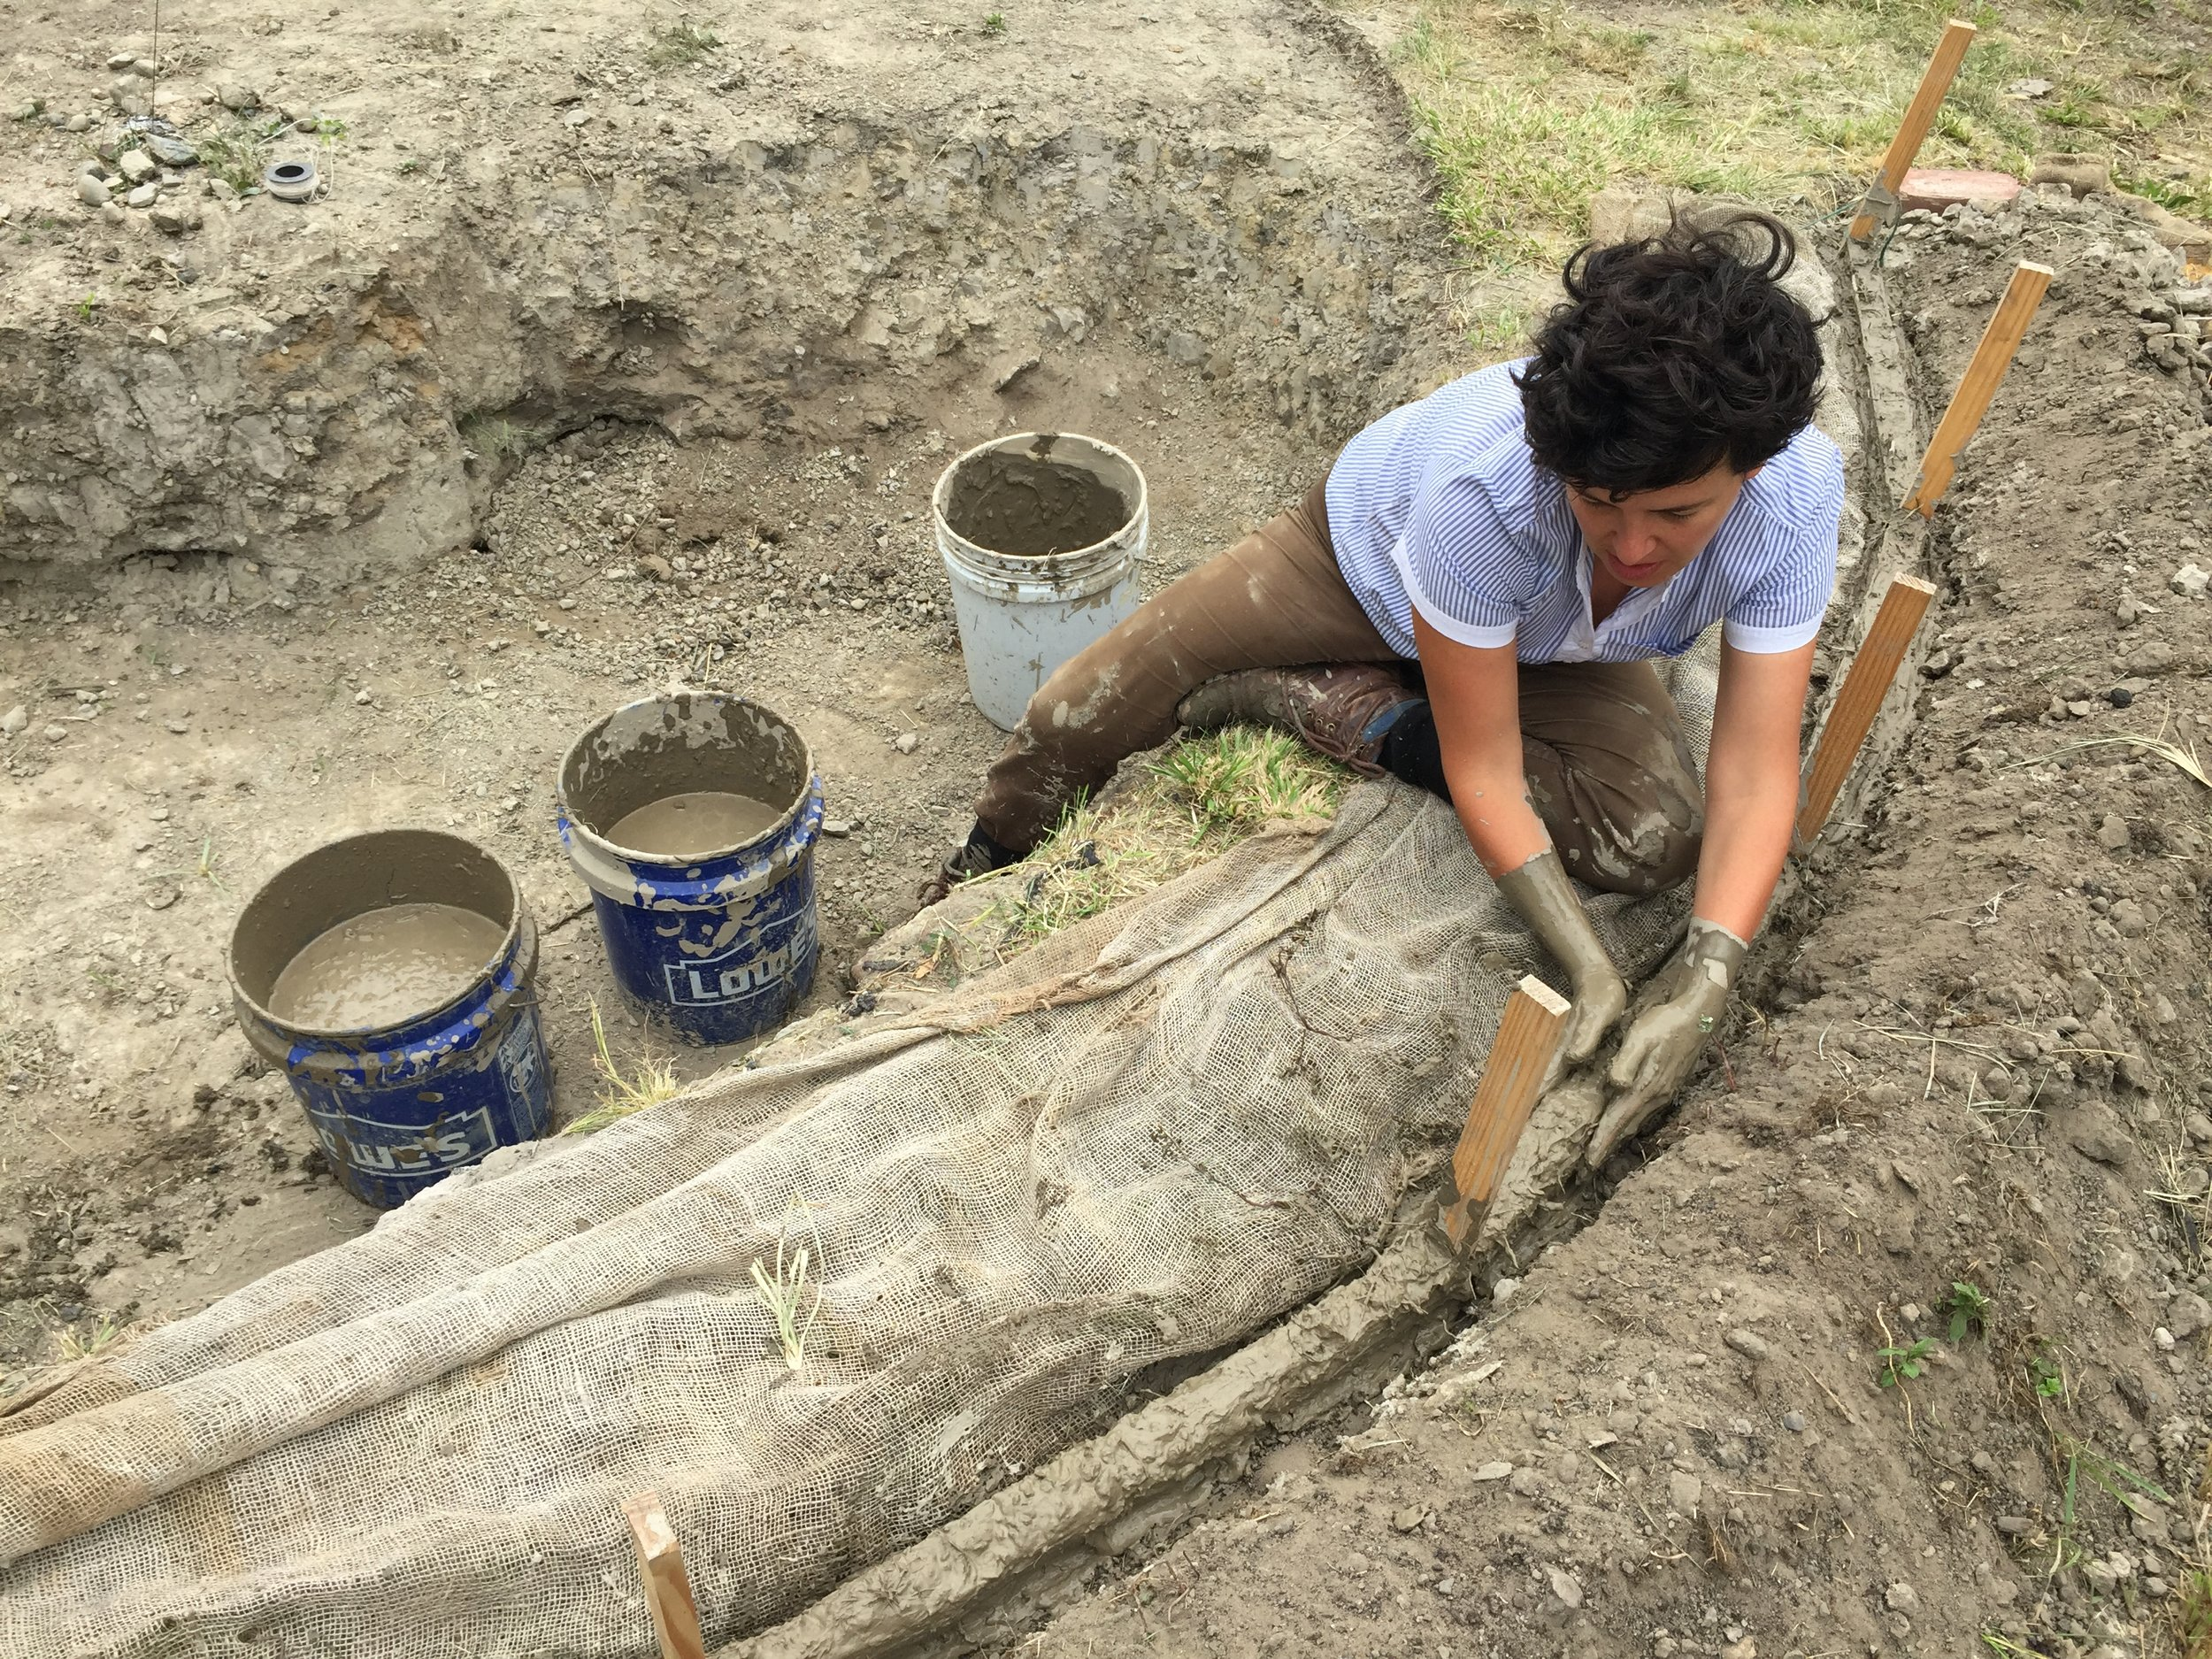 Bel working on her site-specific installation for Burnside Farm, Detroit, Michigan, 2017. @falleiros_bel #earthworks